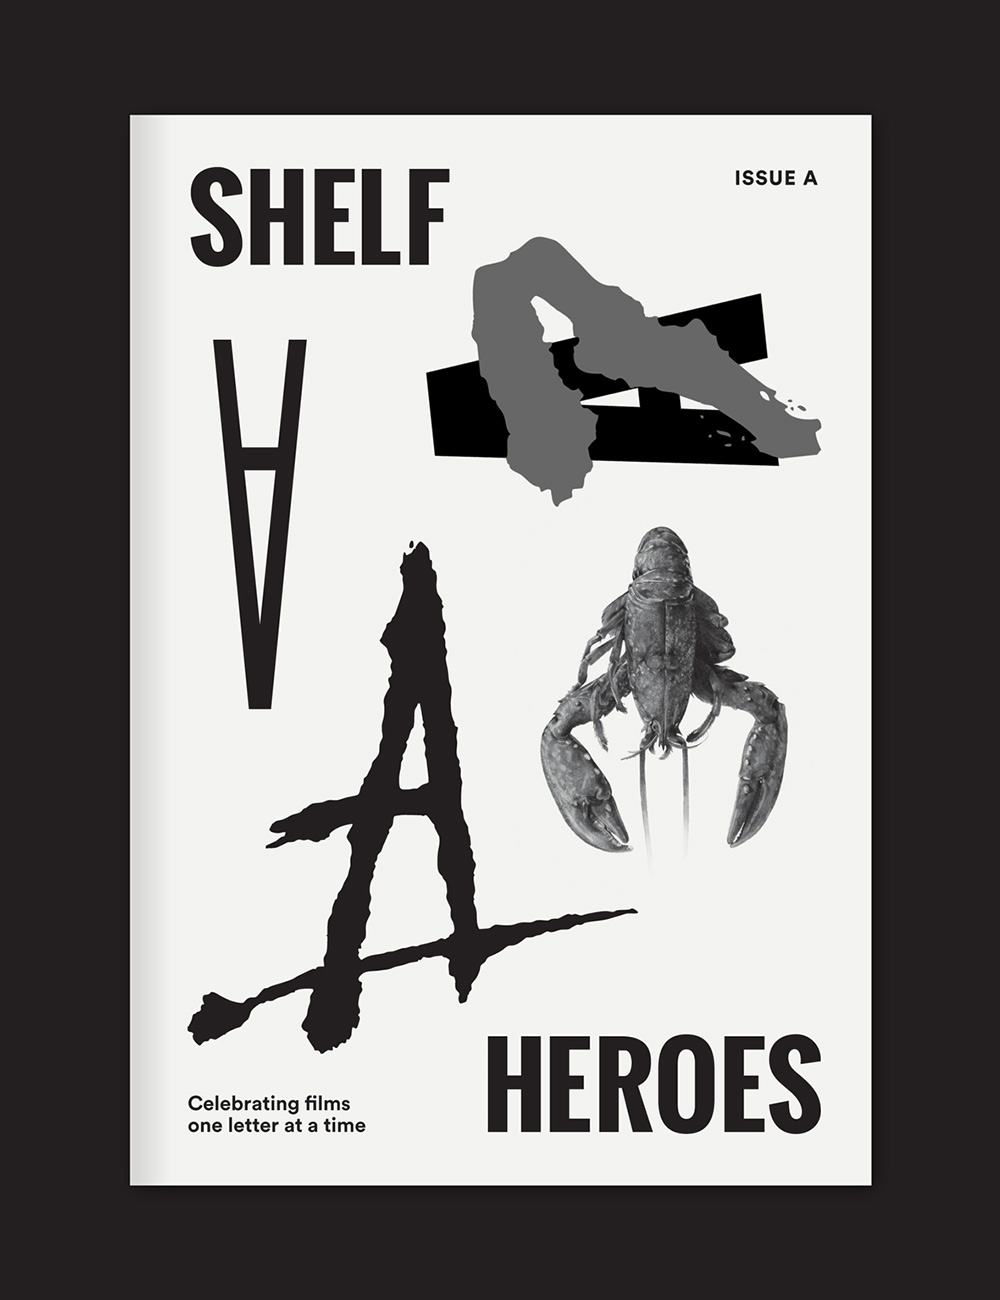 shelf_heroes_issue_a